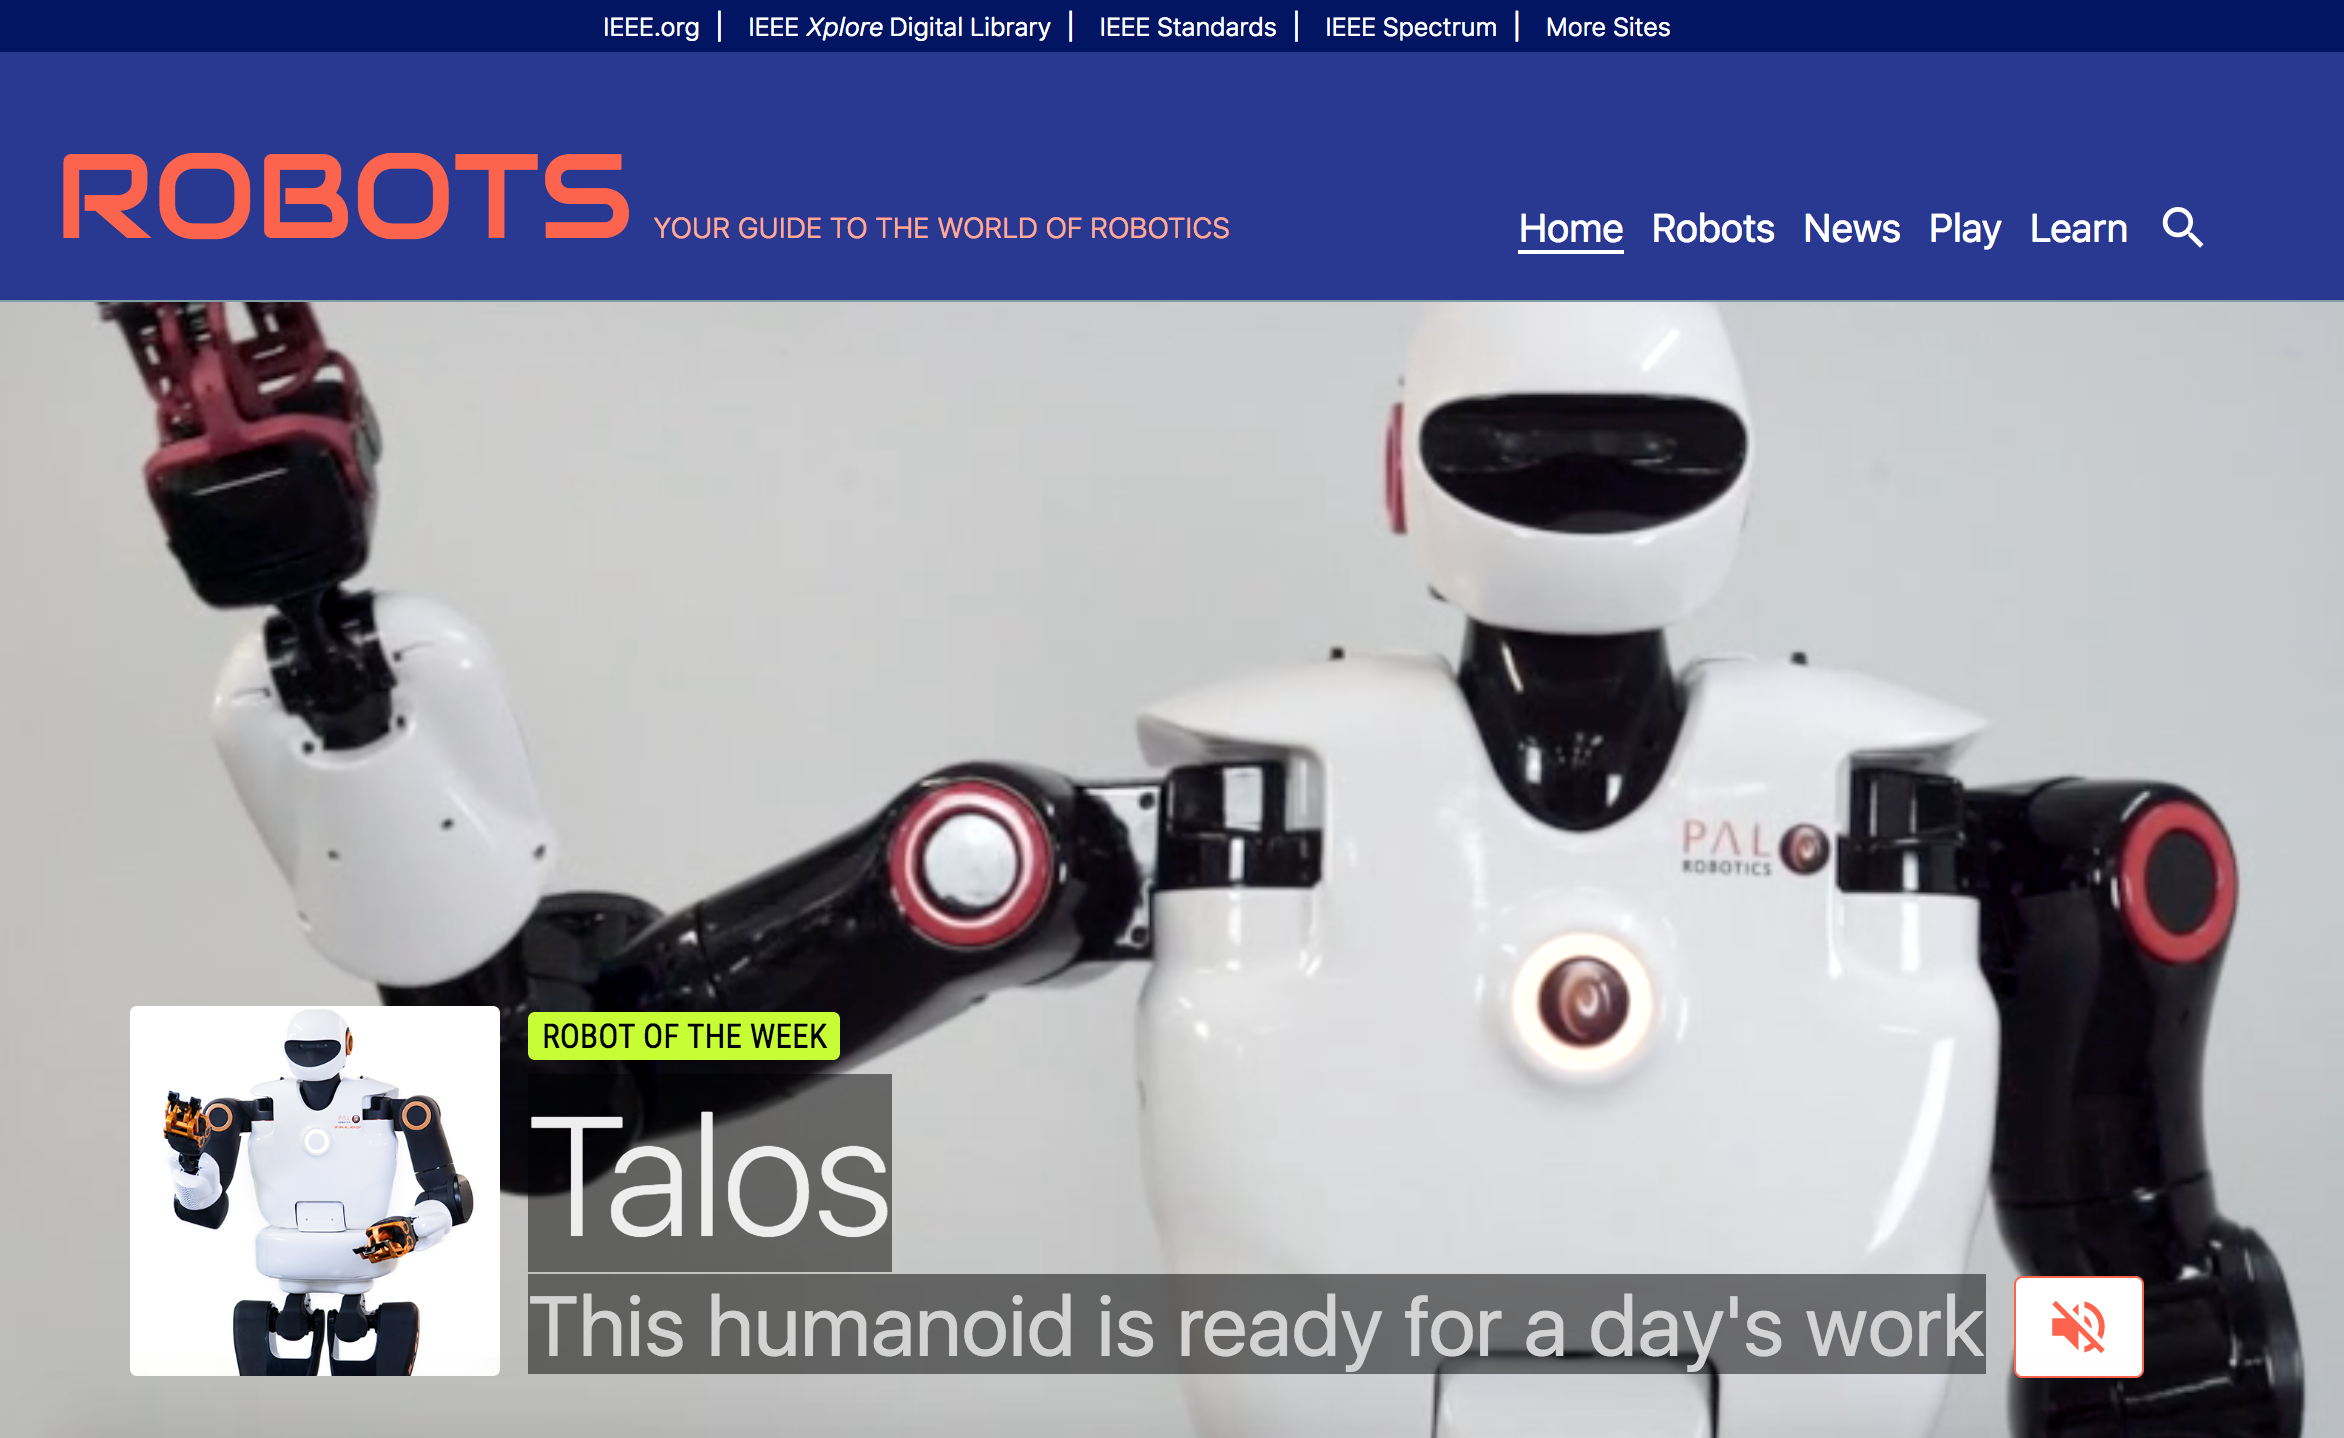 TALOS: The Robot of the Week at the IEEE Robots Guide!